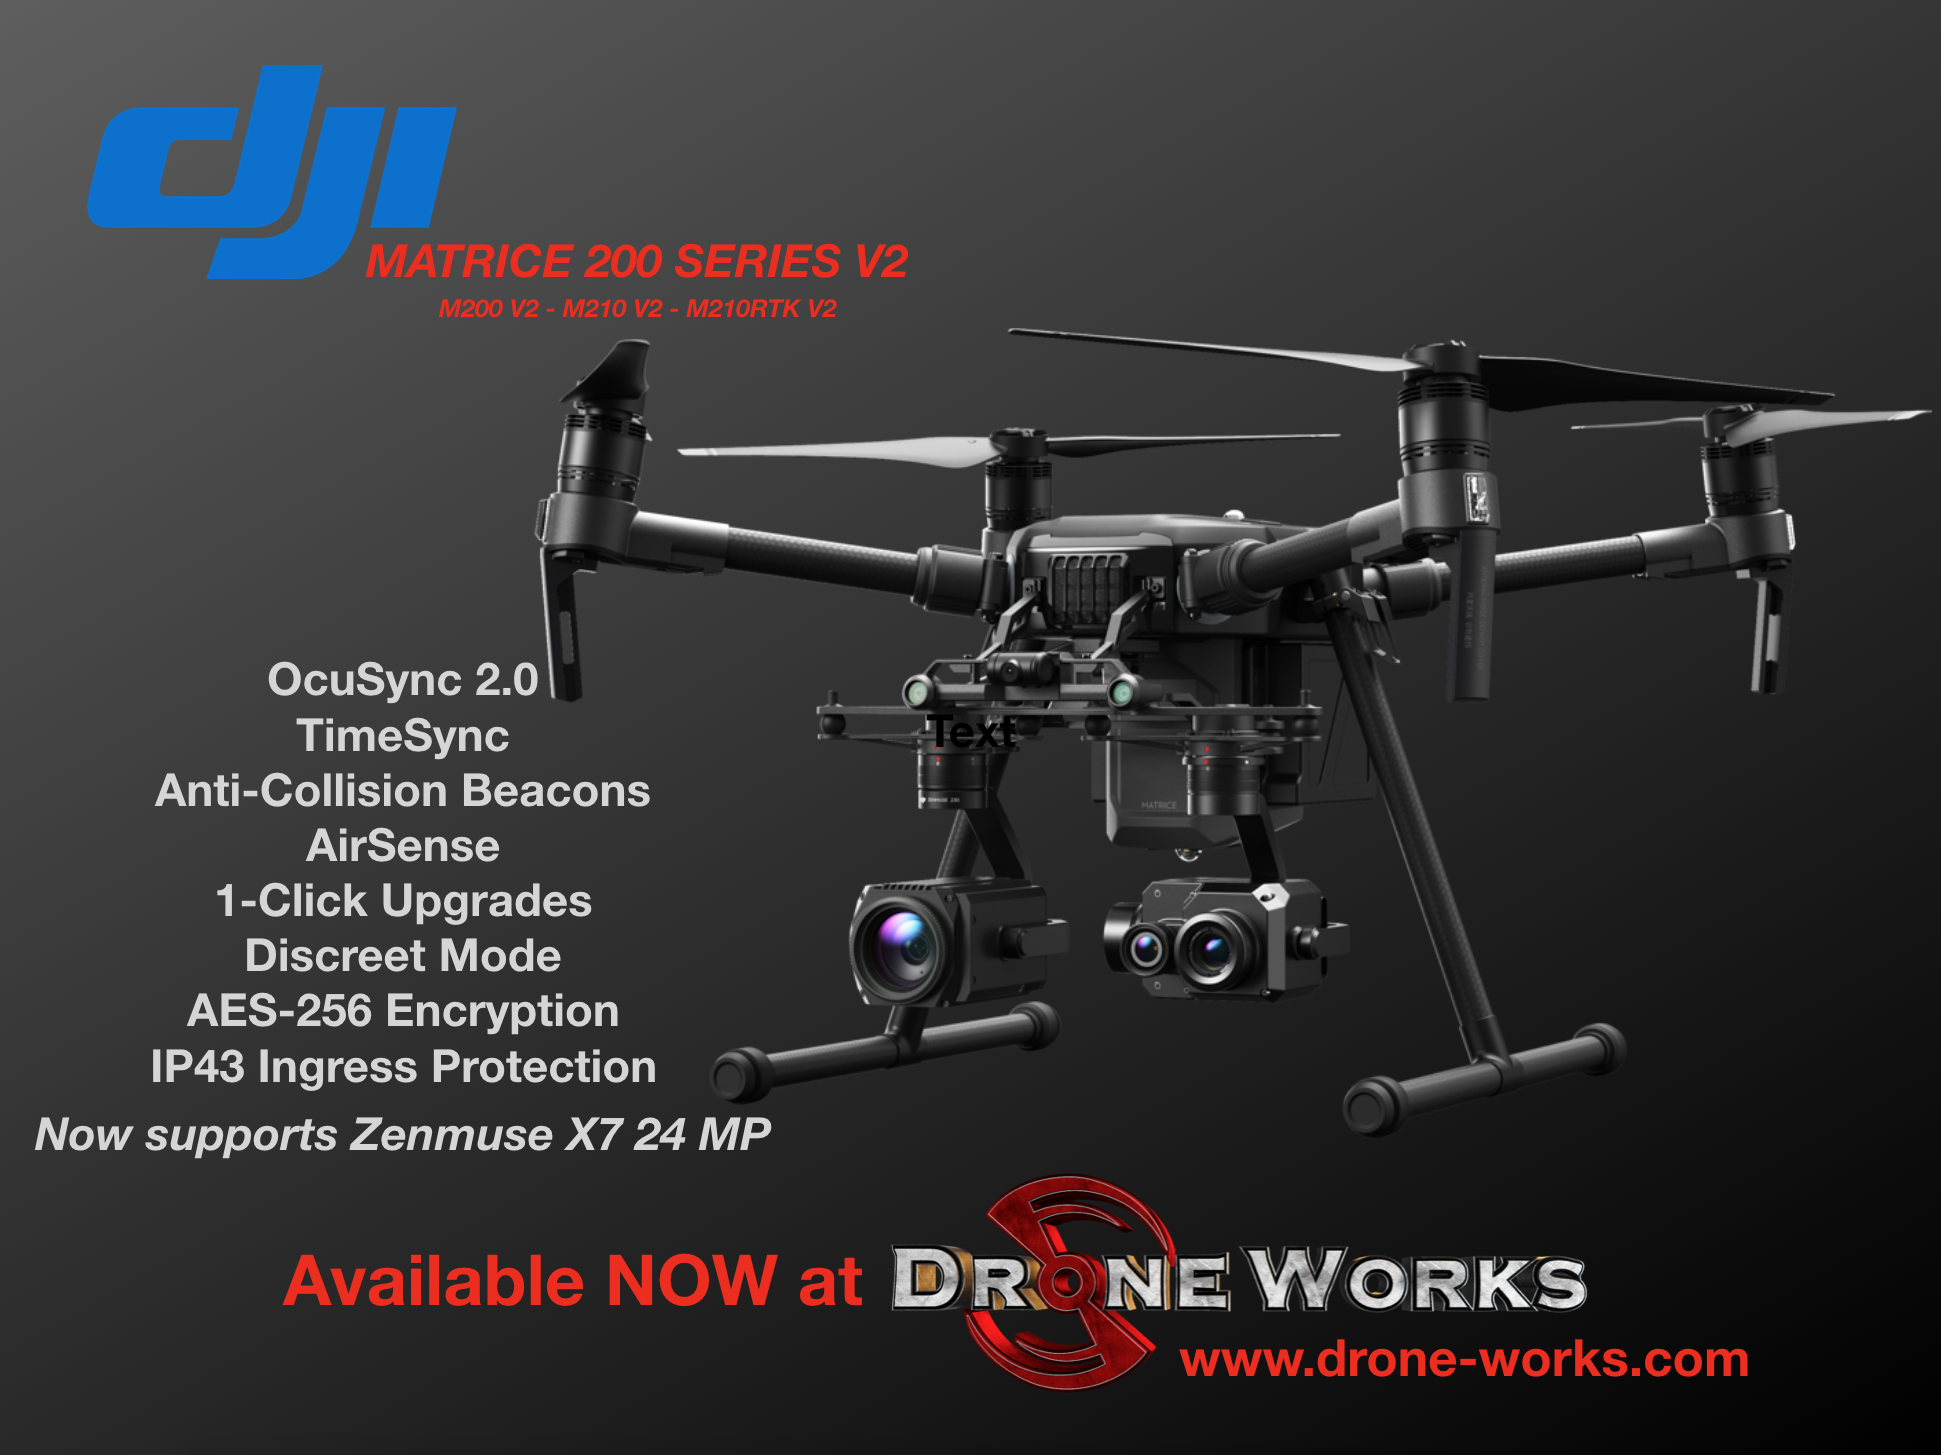 Drone-WorksPro Multi-Rotor Drones   UAV Online Shop and Service